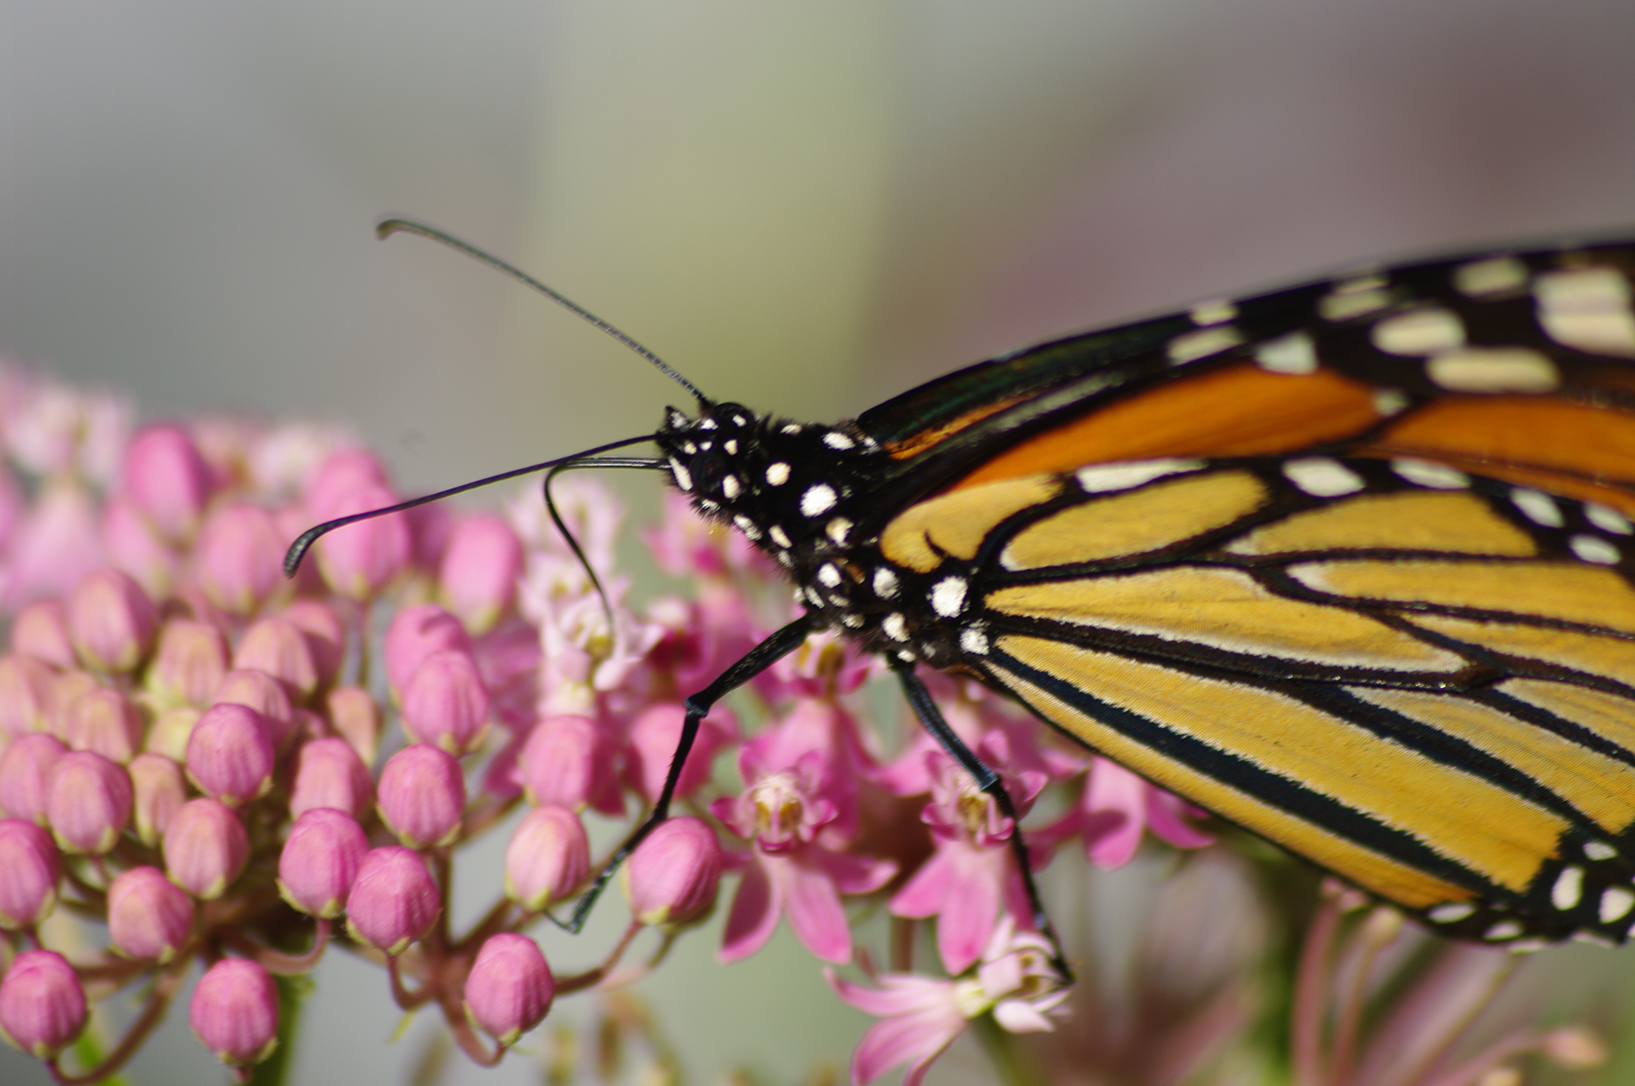 A monarch butterfly is shown.